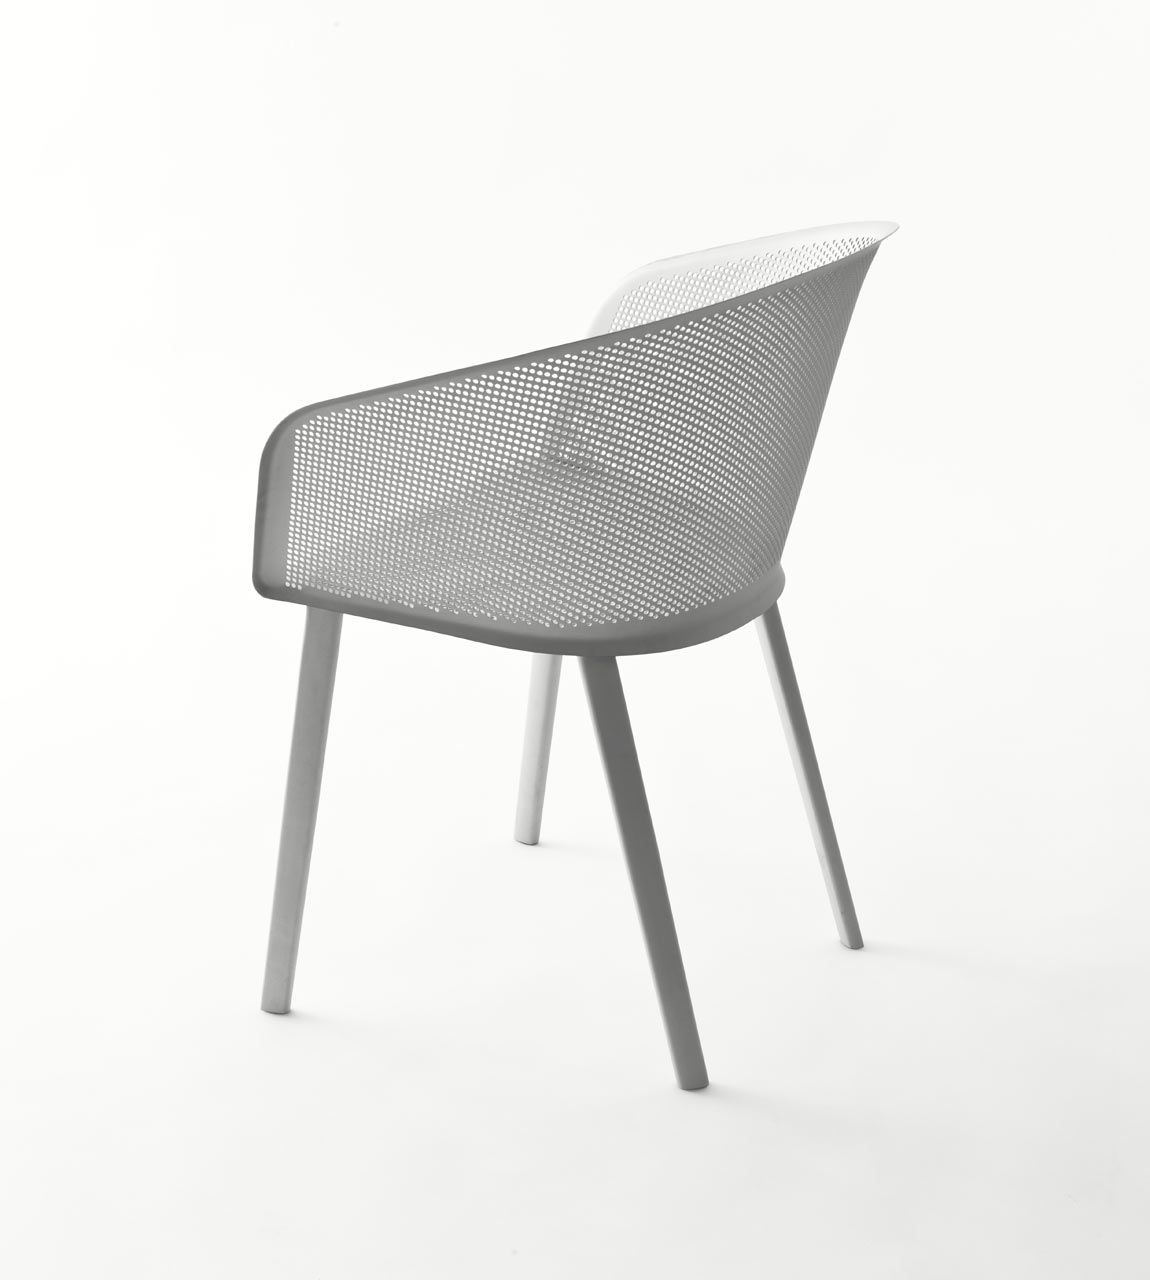 Stampa-Chair-Kettal-Bouroullec-9 | Assises, Siège et Soupes